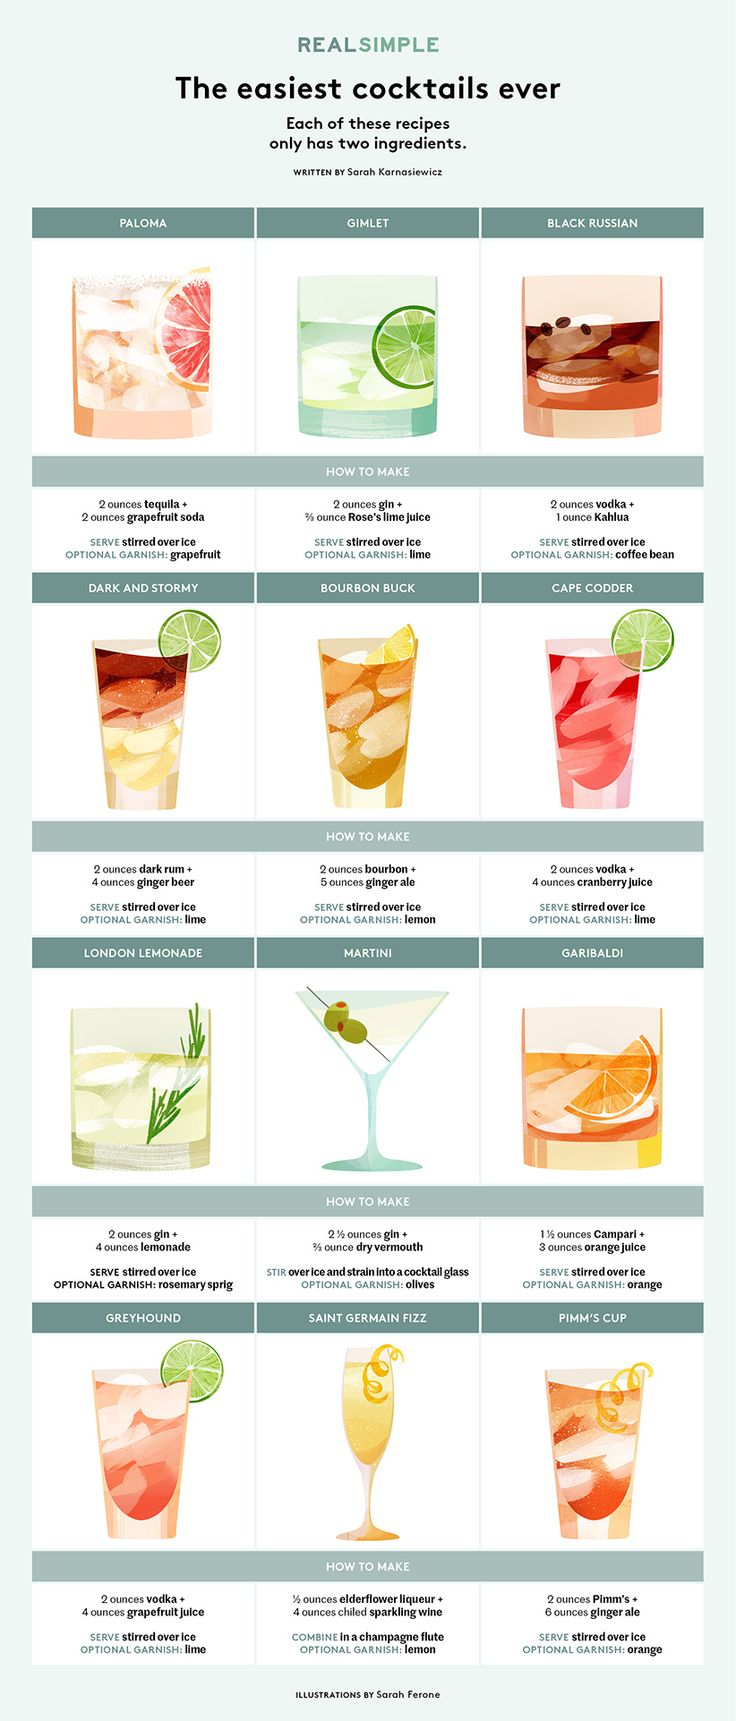 12 Easy Two-Ingredient Cocktails | Guaranteed to take the edge off in just 2 shakes... or stirs, as the case may be.